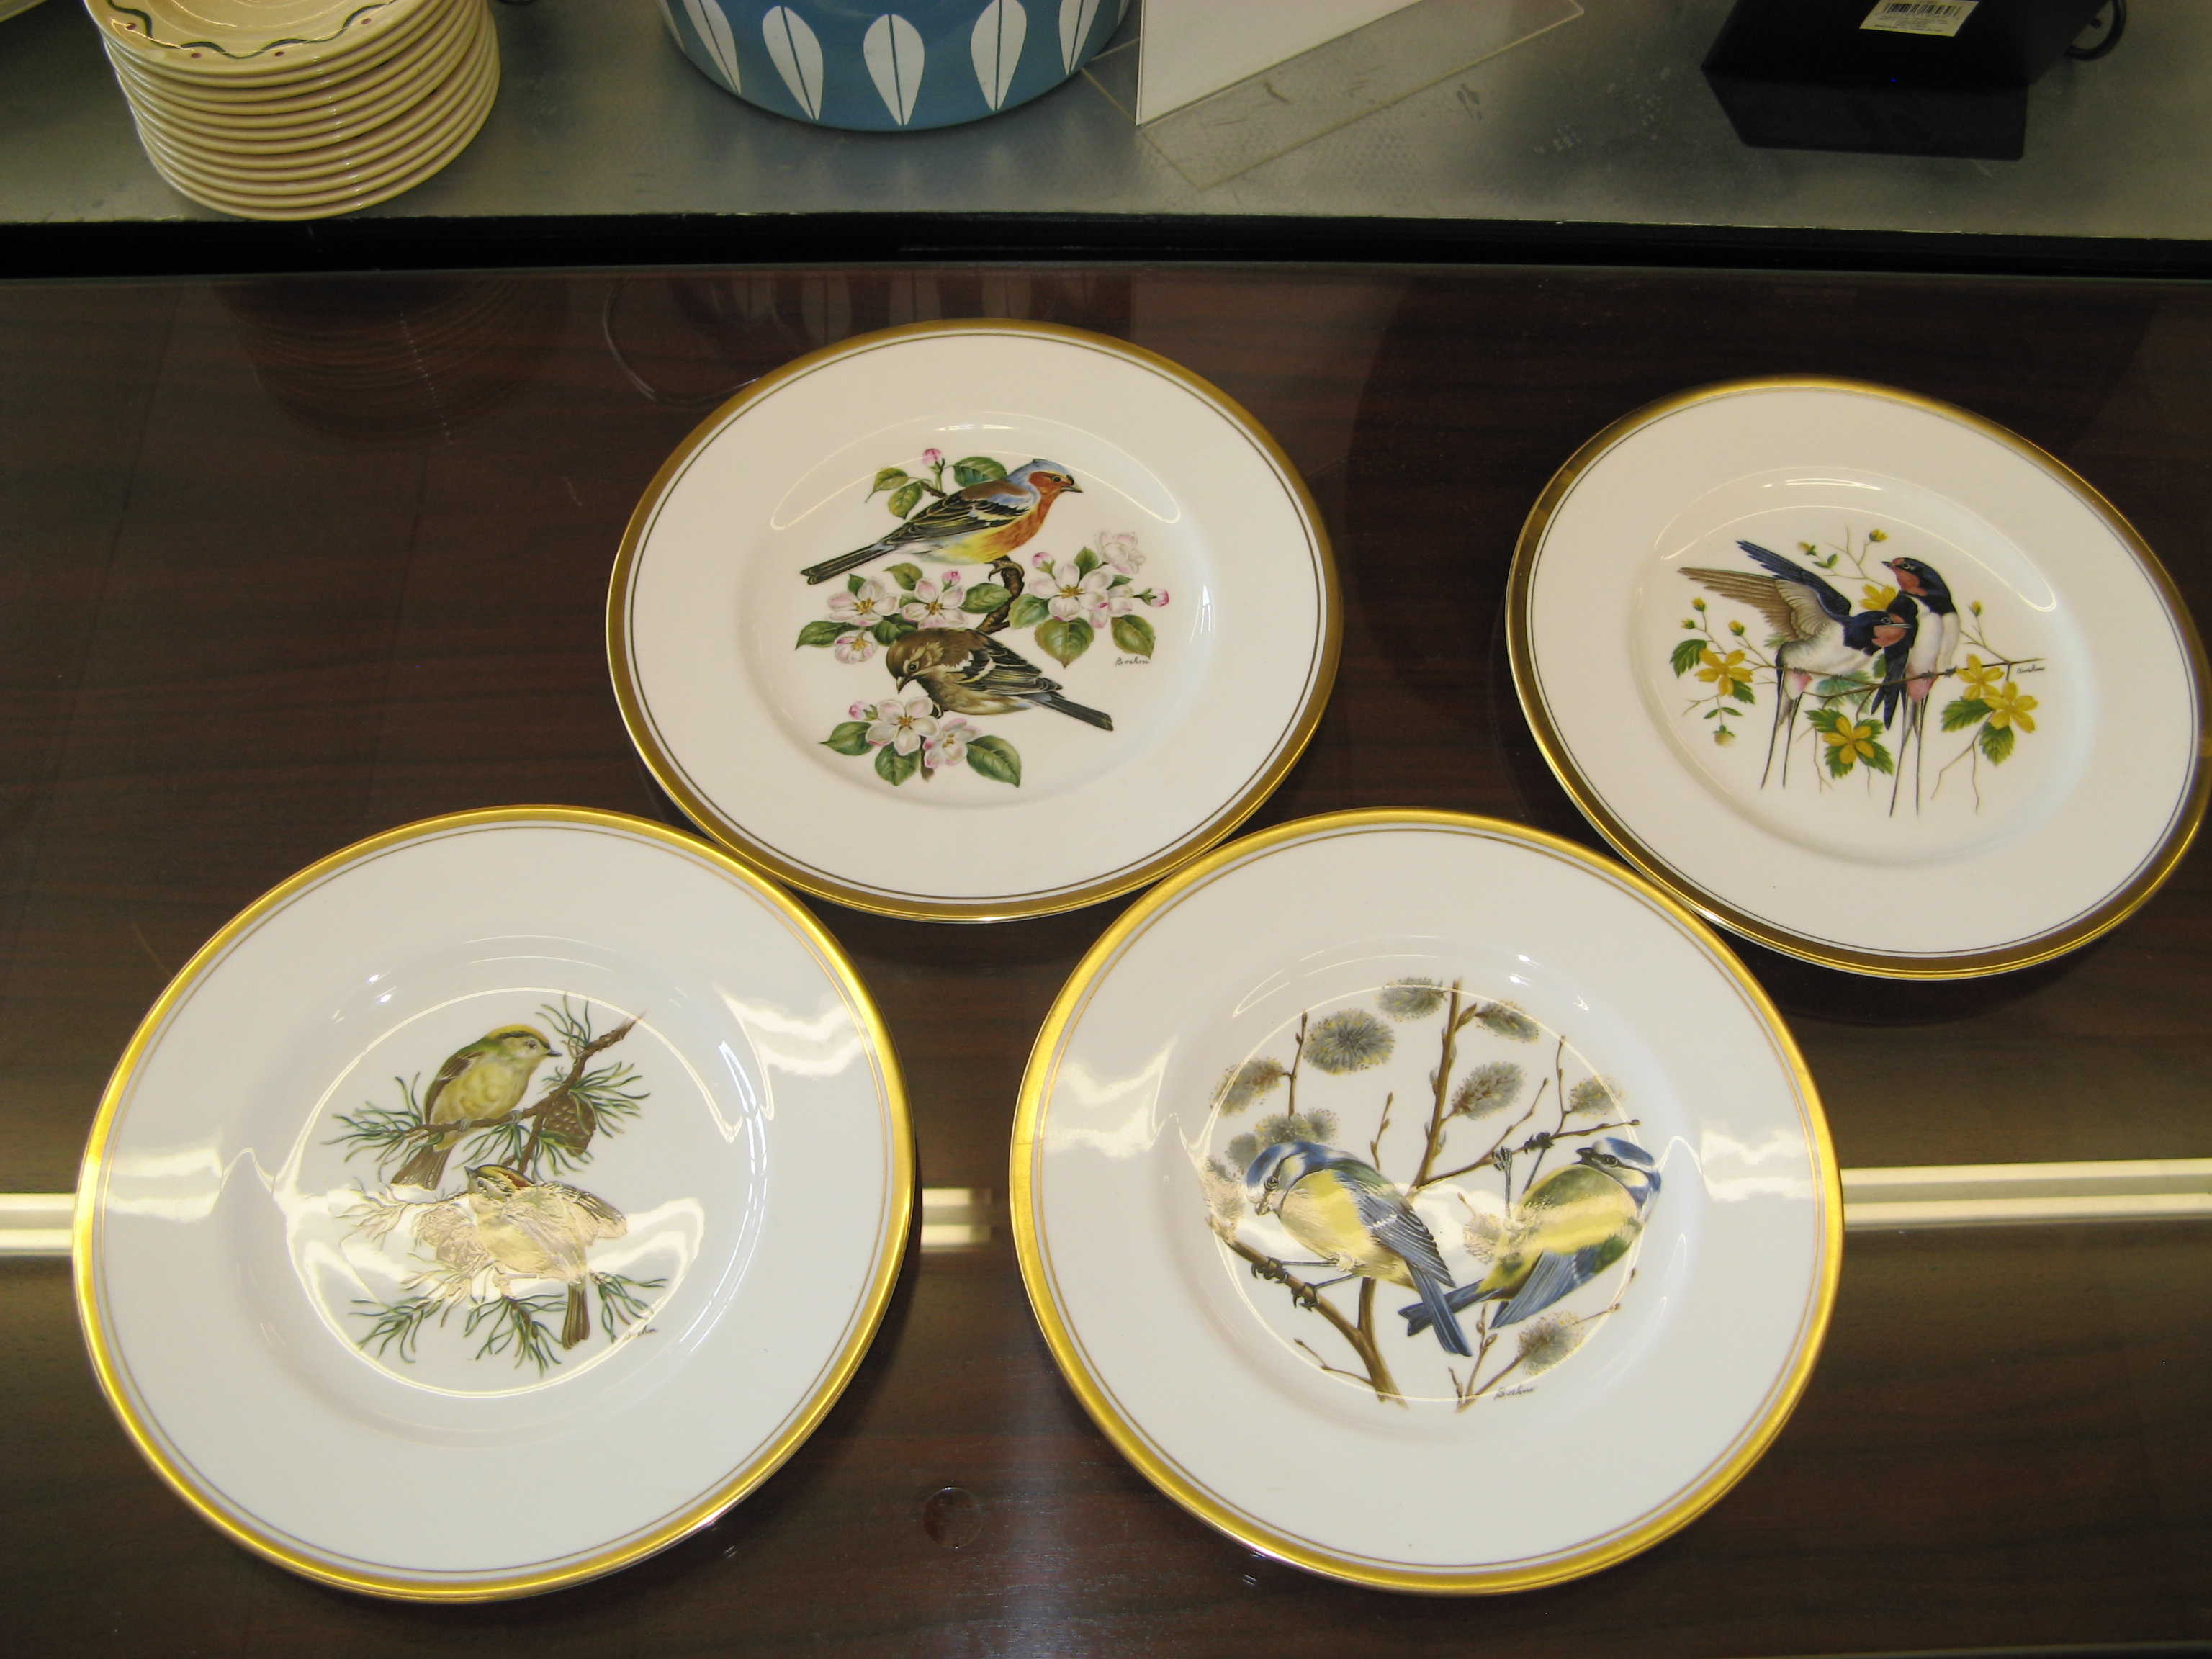 China Plate with Bird Painting